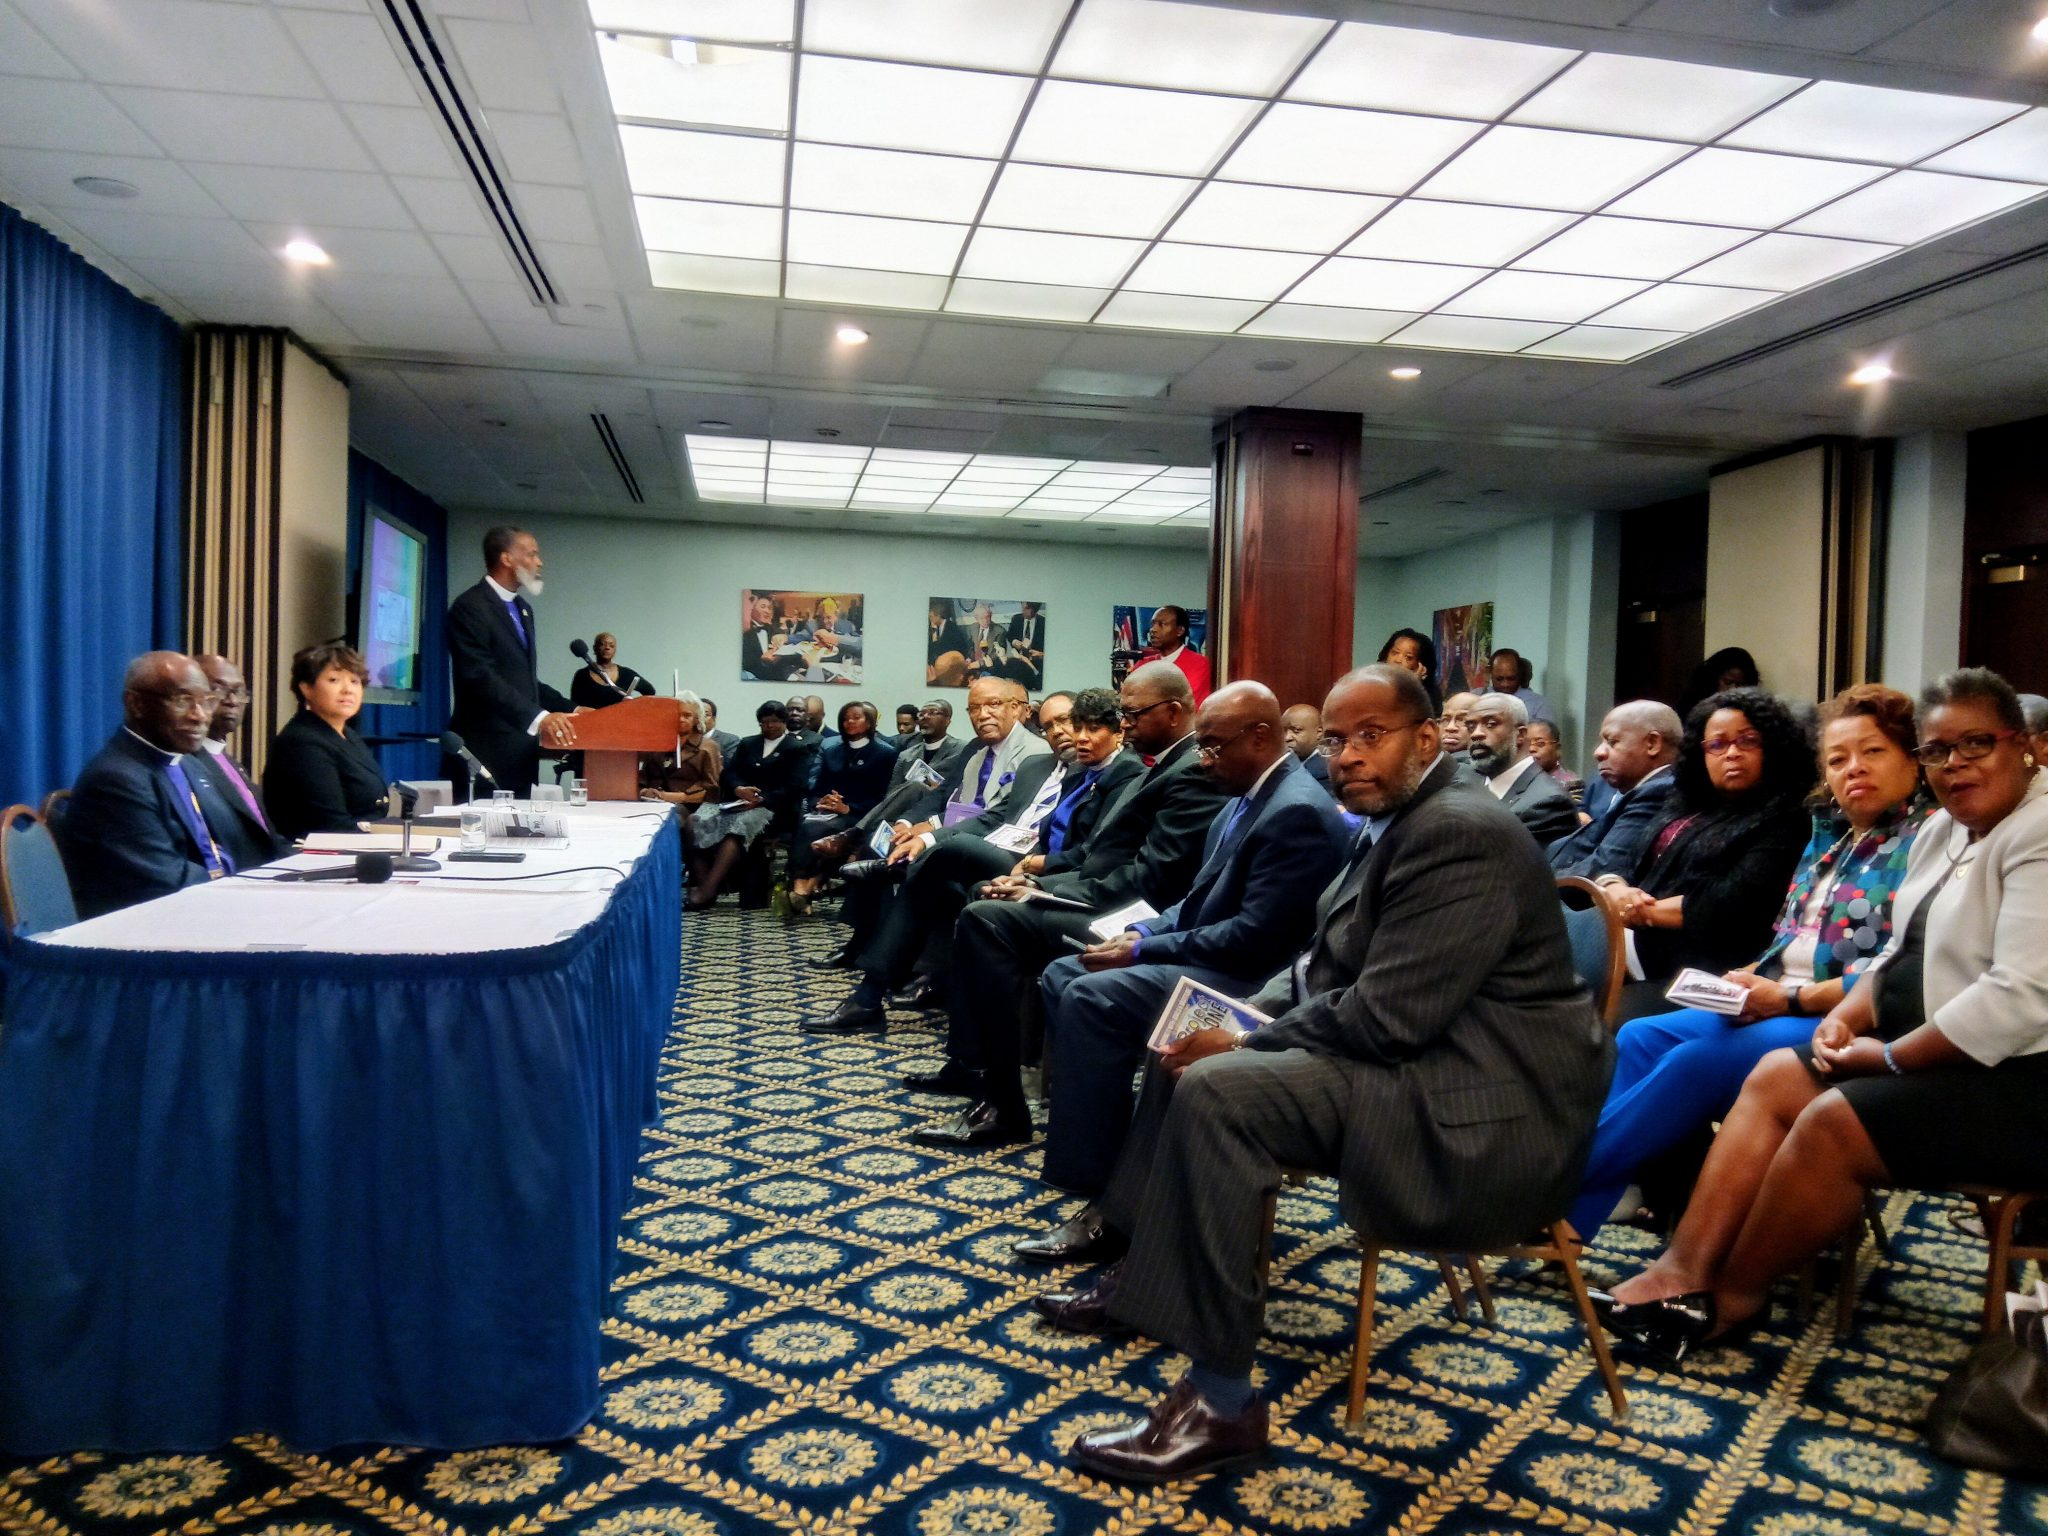 Black Methodist United, a nationwide assemblage of African-American Methodist clergy, convene Oct. 4 at the National Press Club in D.C. to discuss eradication of high unemployment among African-Americans. (Dorothy Rowley/The Washington Informer)